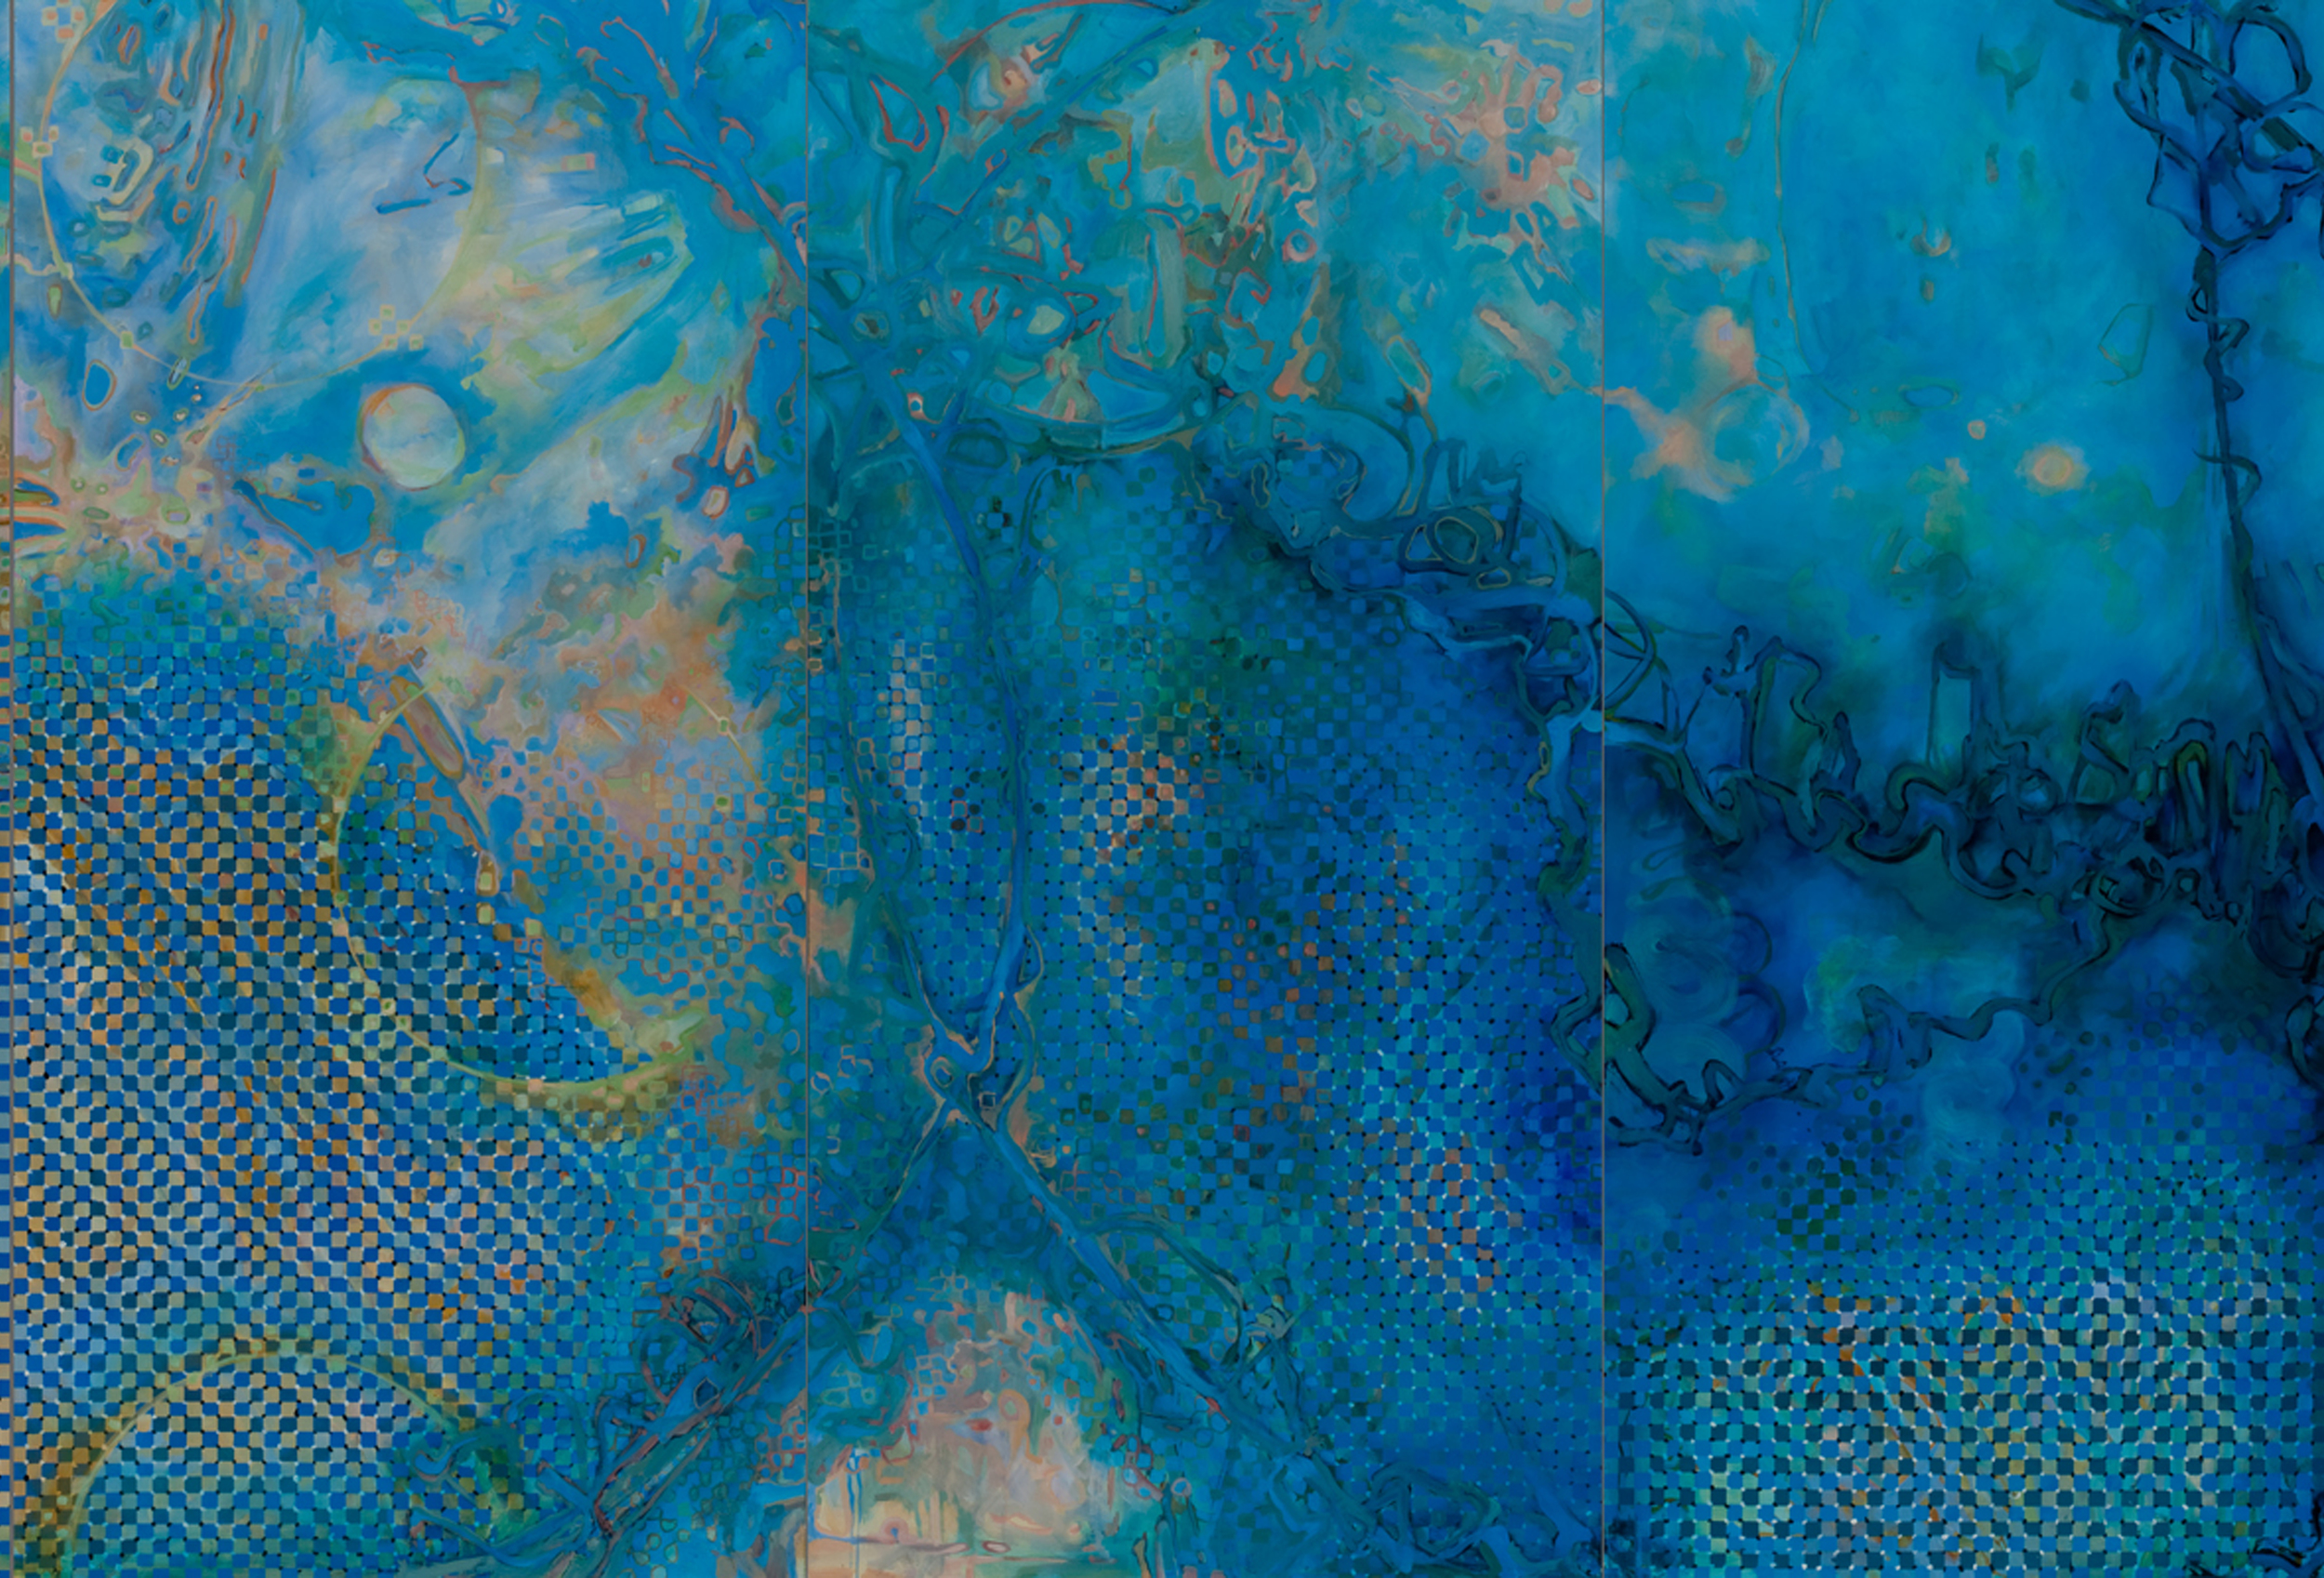 Tropos (Panel 3-5), Tropos, Acrylic on Canvas, 8' by 48', 2011